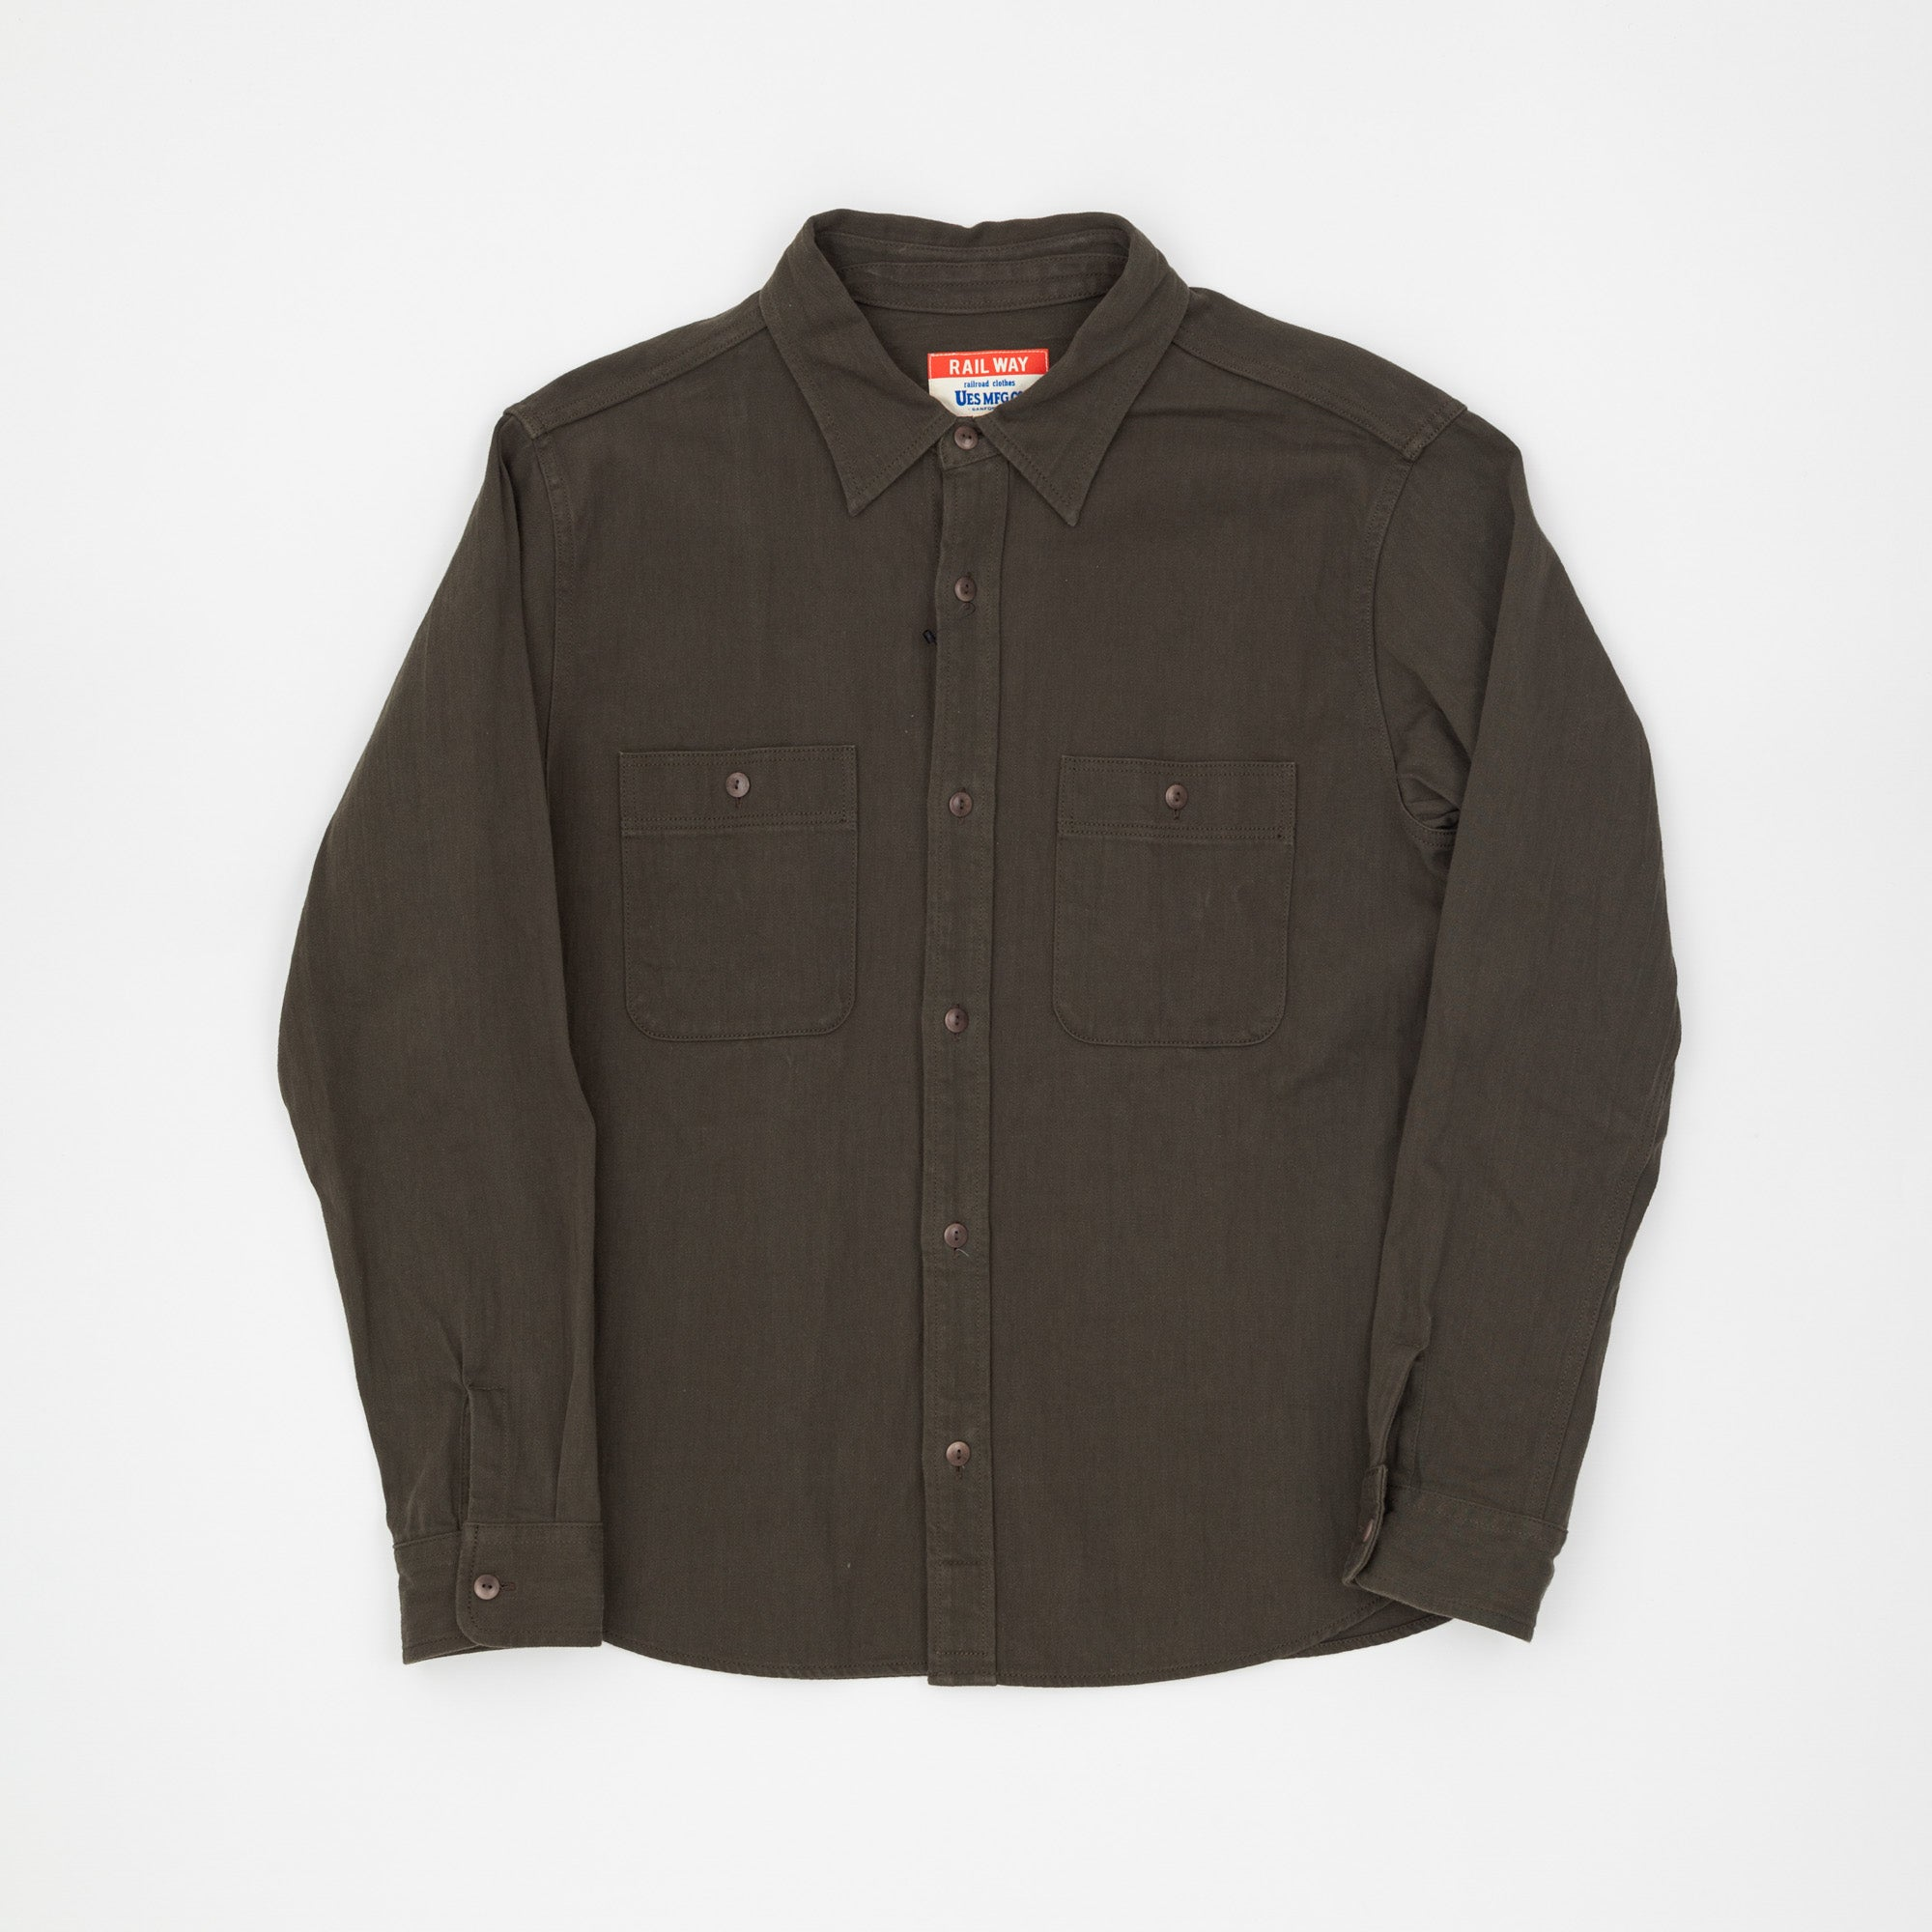 Rail Way Military Shirt